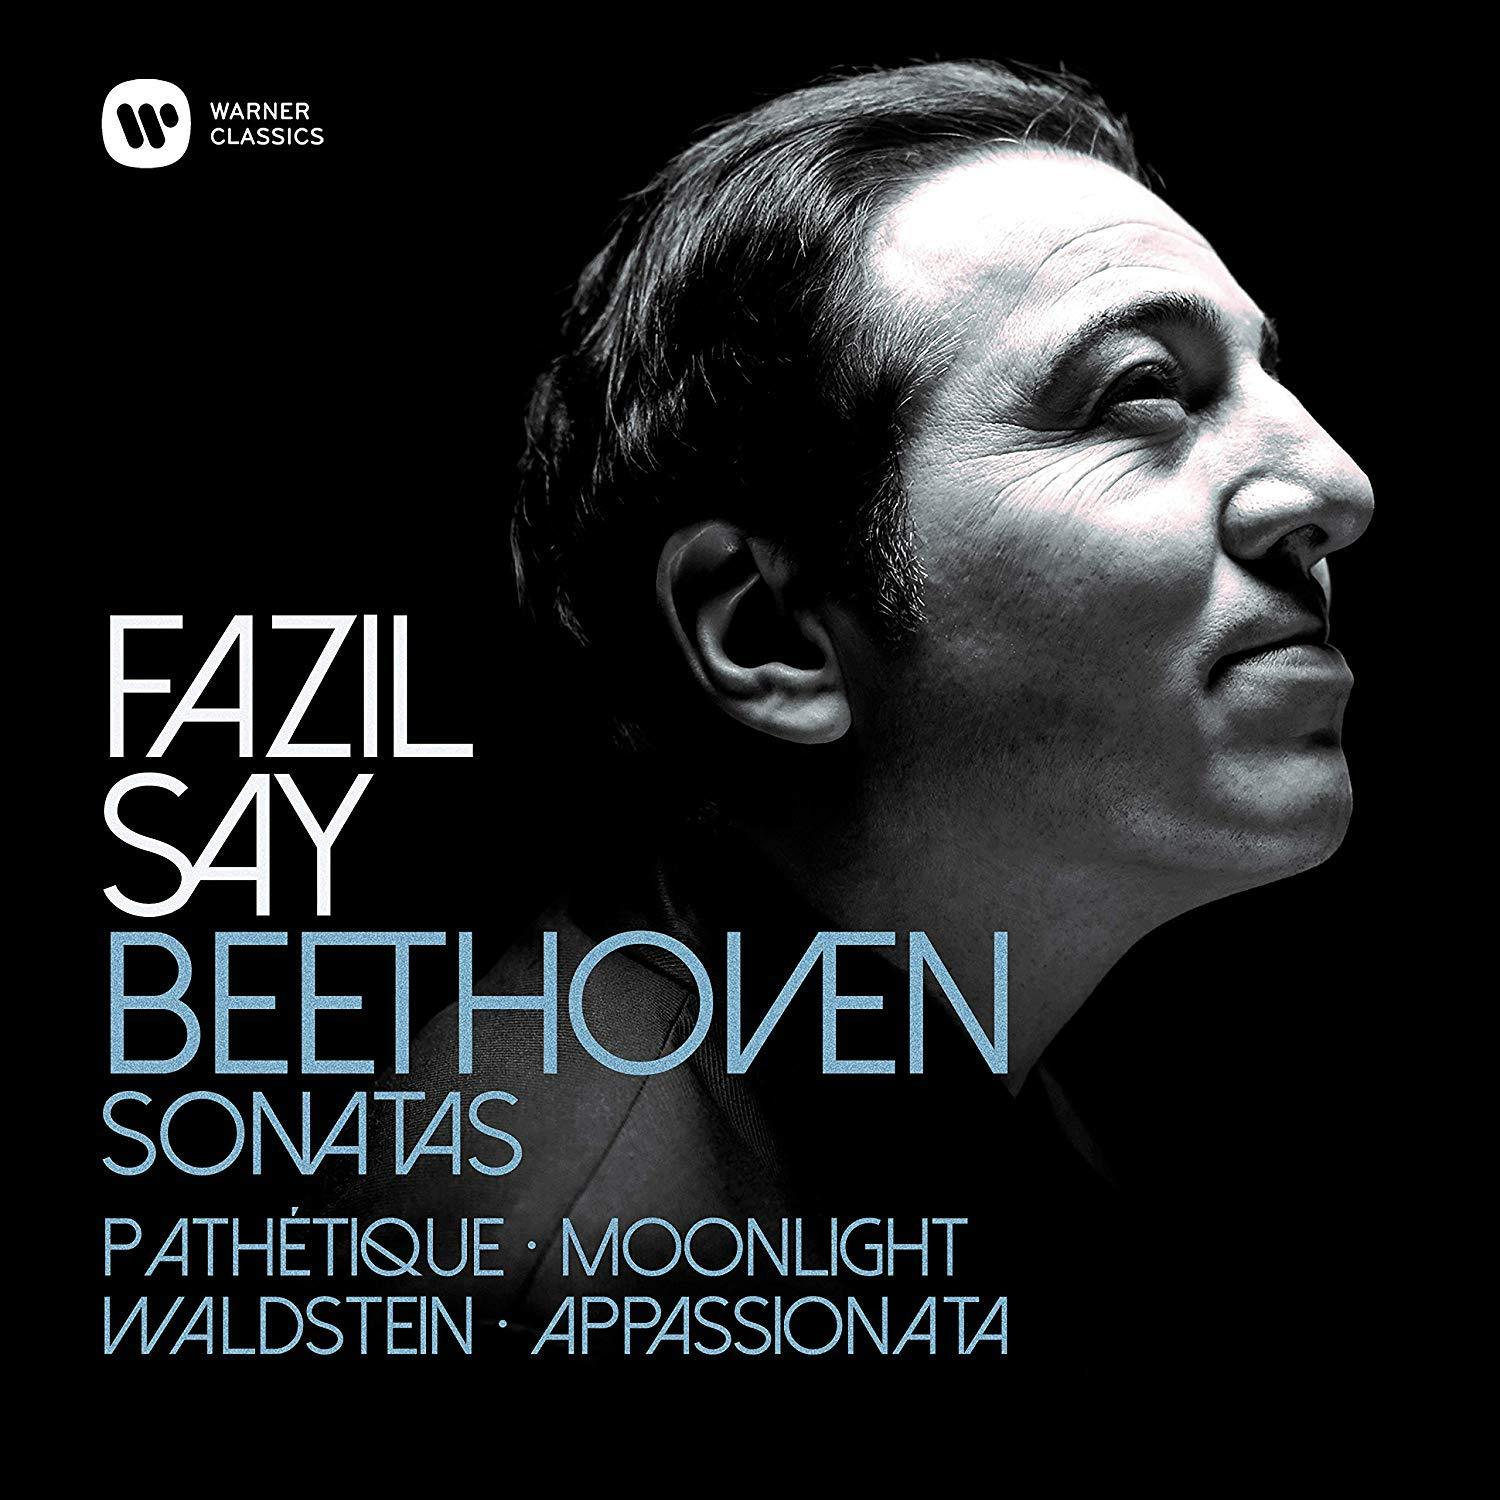 Fazil Say - Beethoven: Complete Piano Sonatas [2LP] - Urban Vinyl | Records, Headphones, and more.